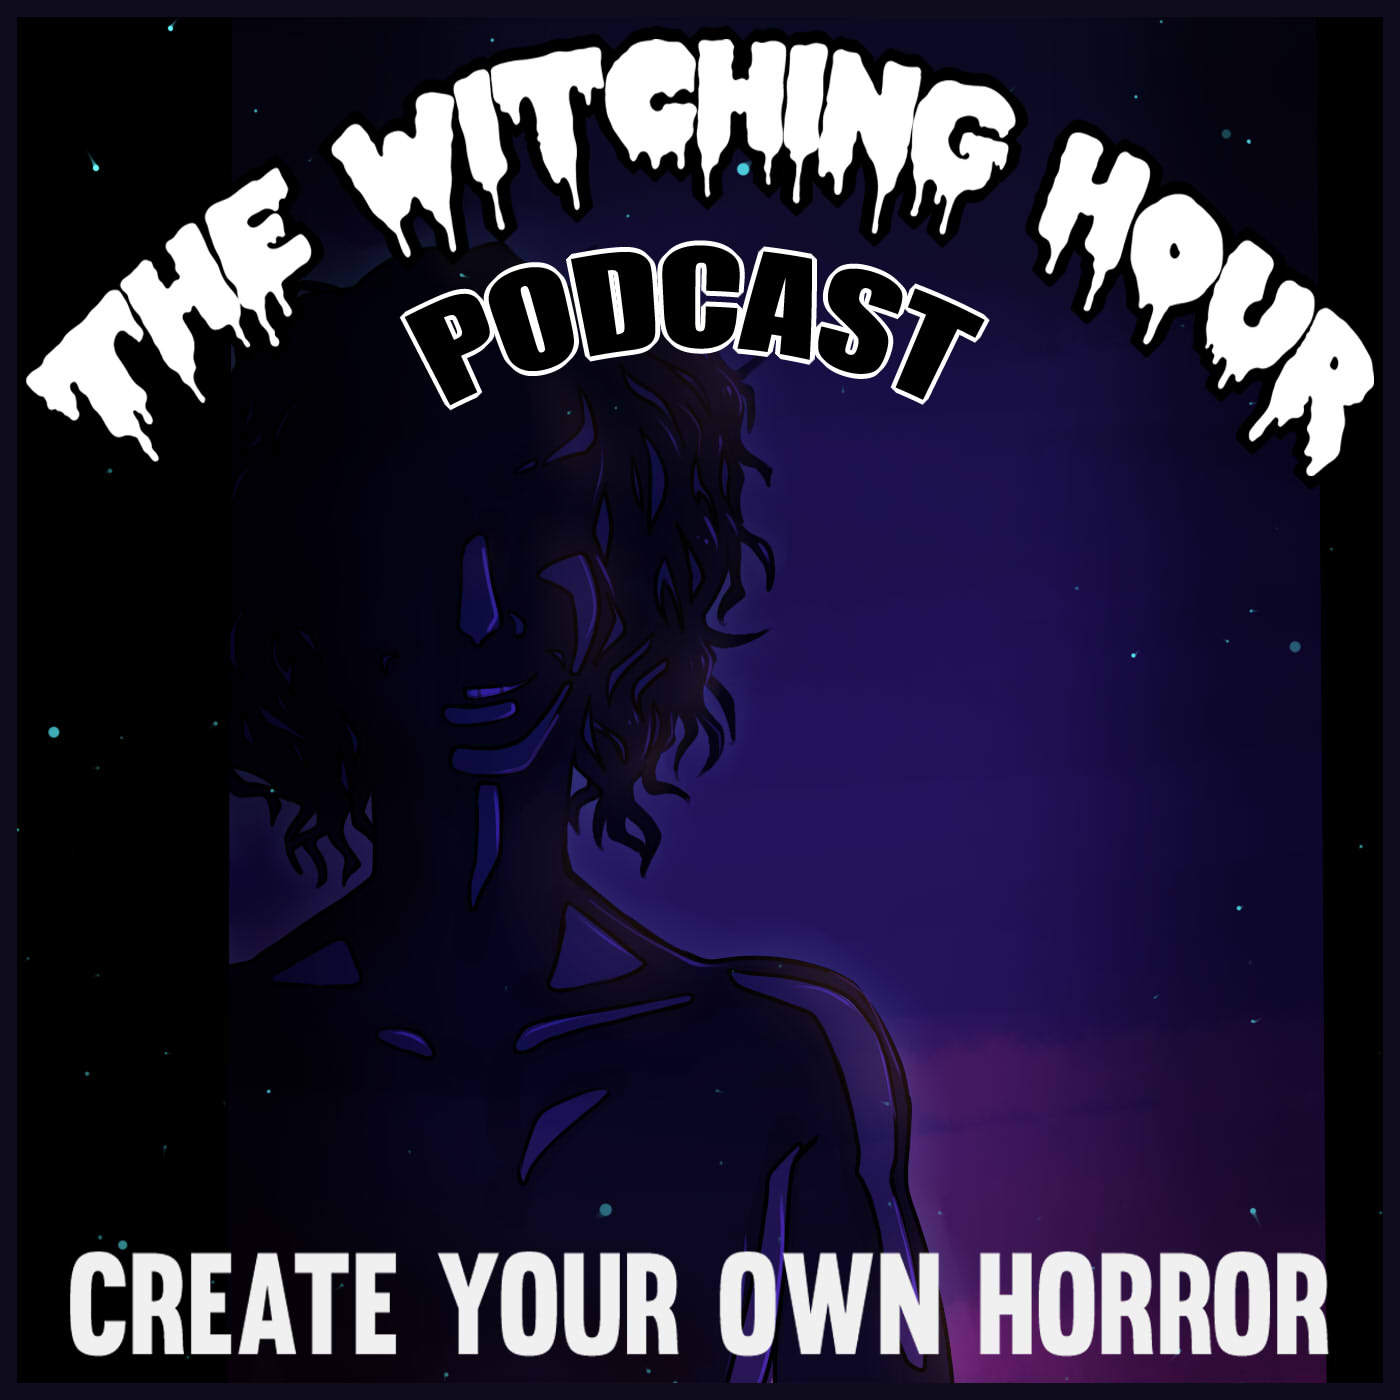 witchinghourpodcast11_lightsout_horrormovie